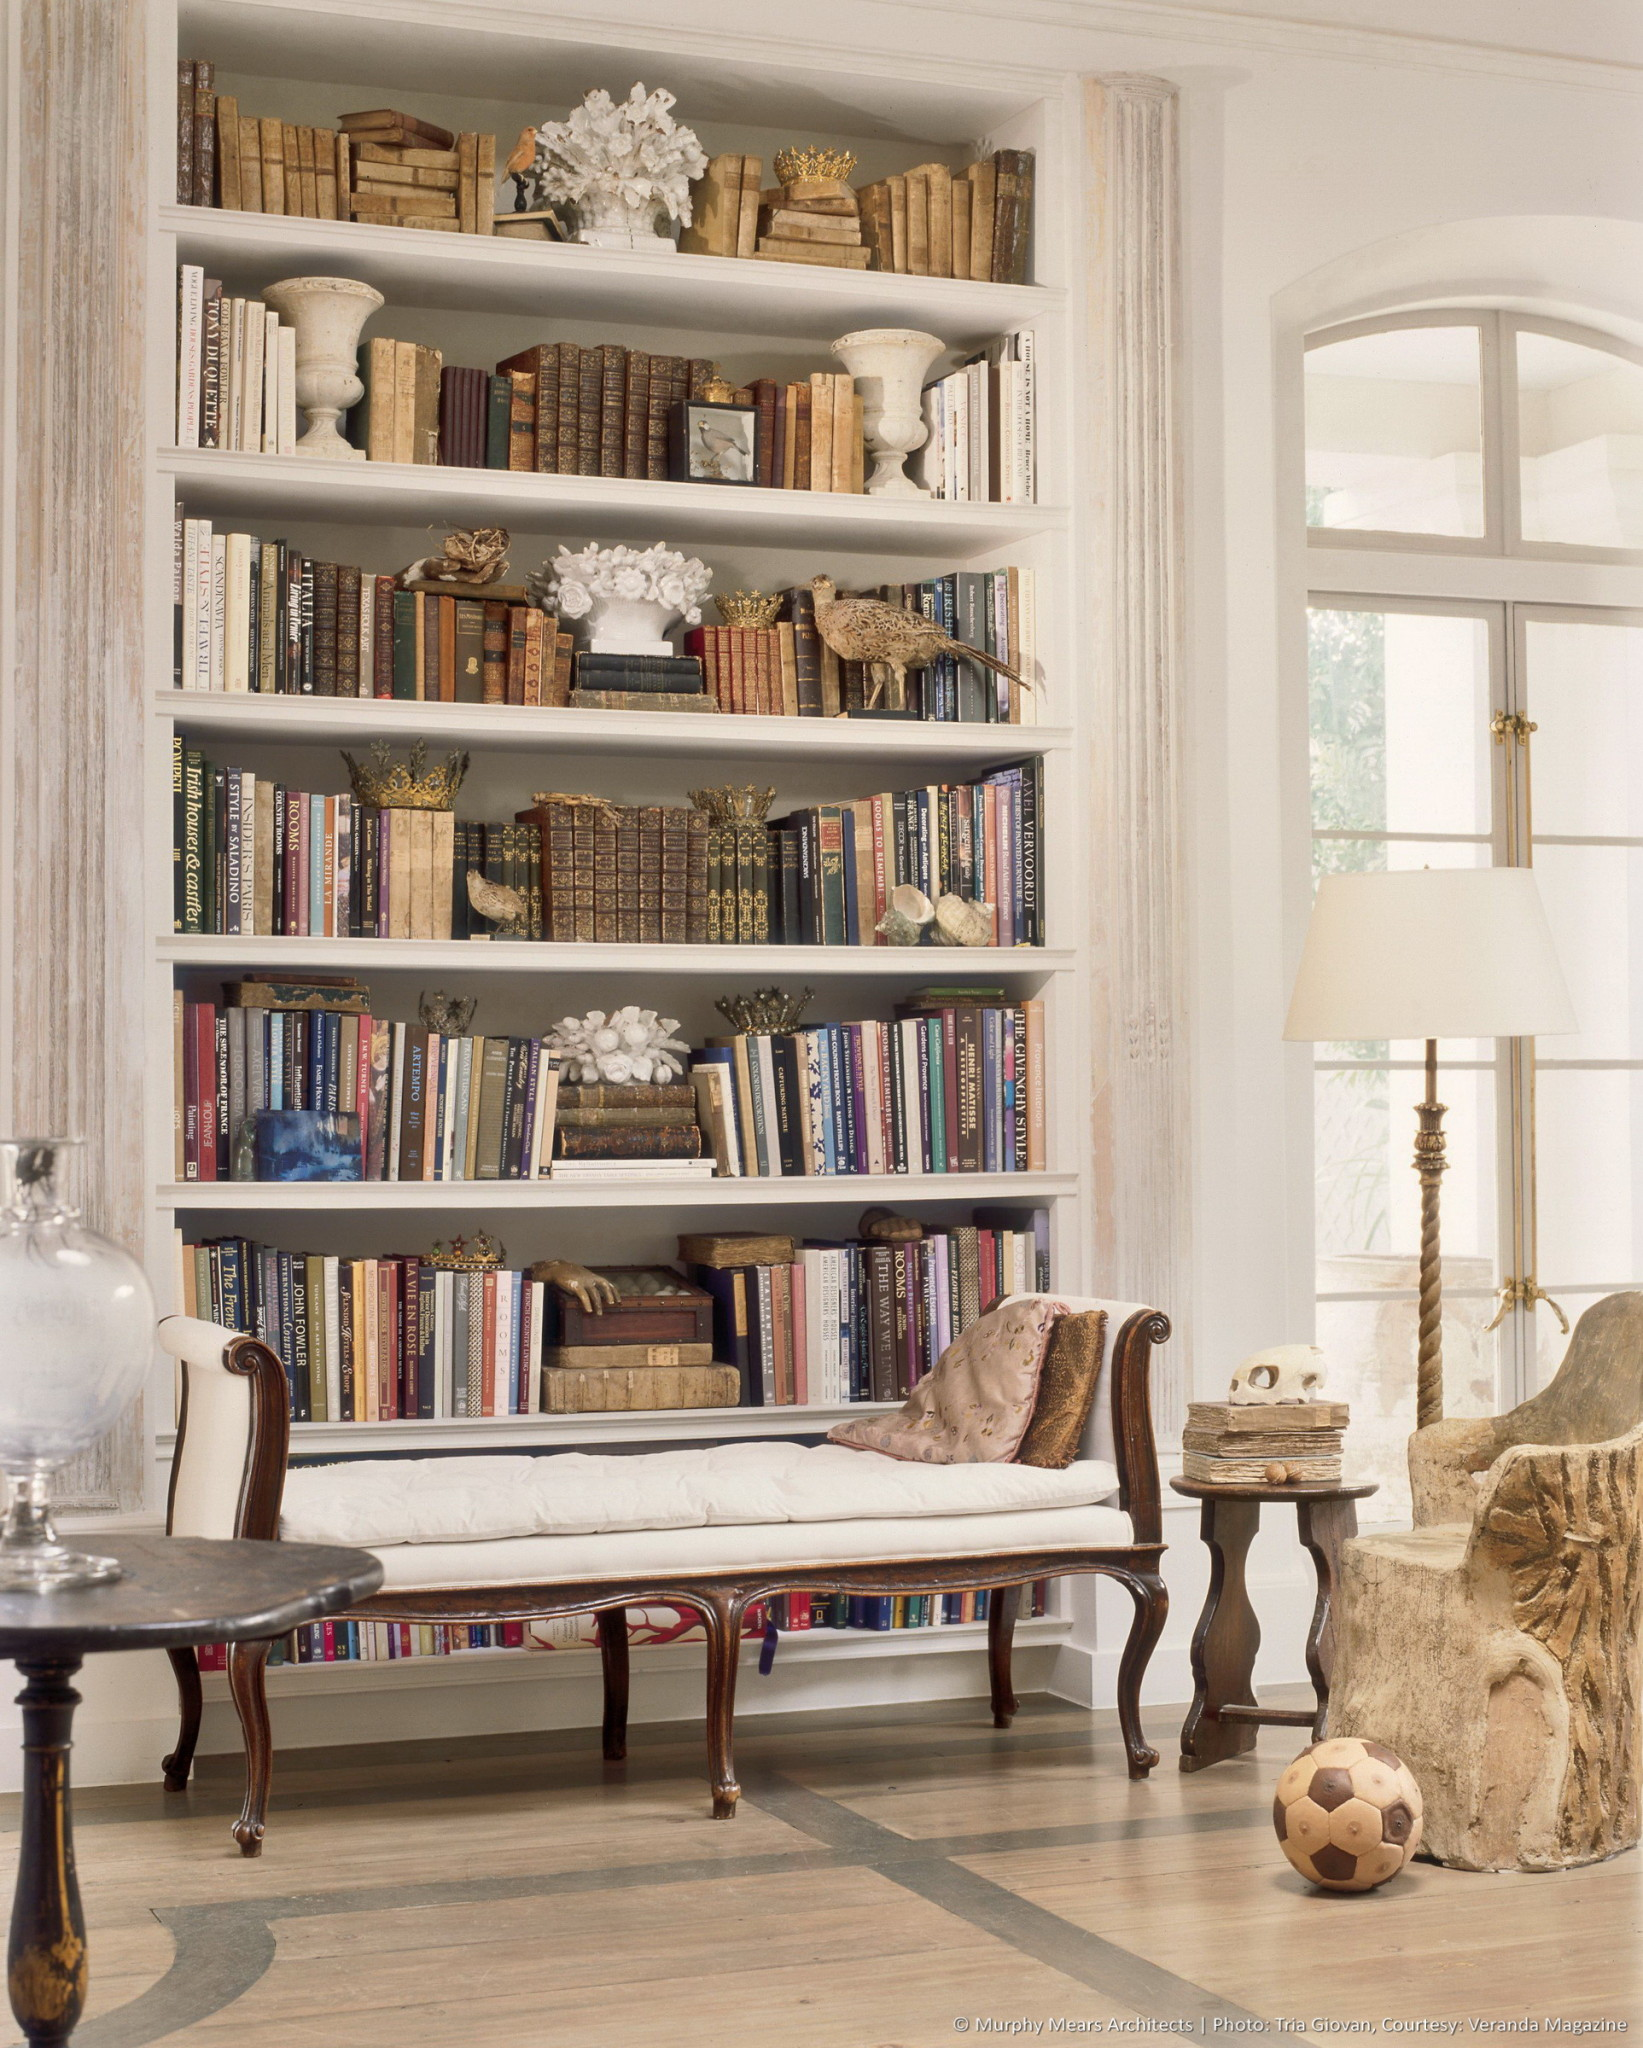 w-neoclassical-shotgun-bookshelves